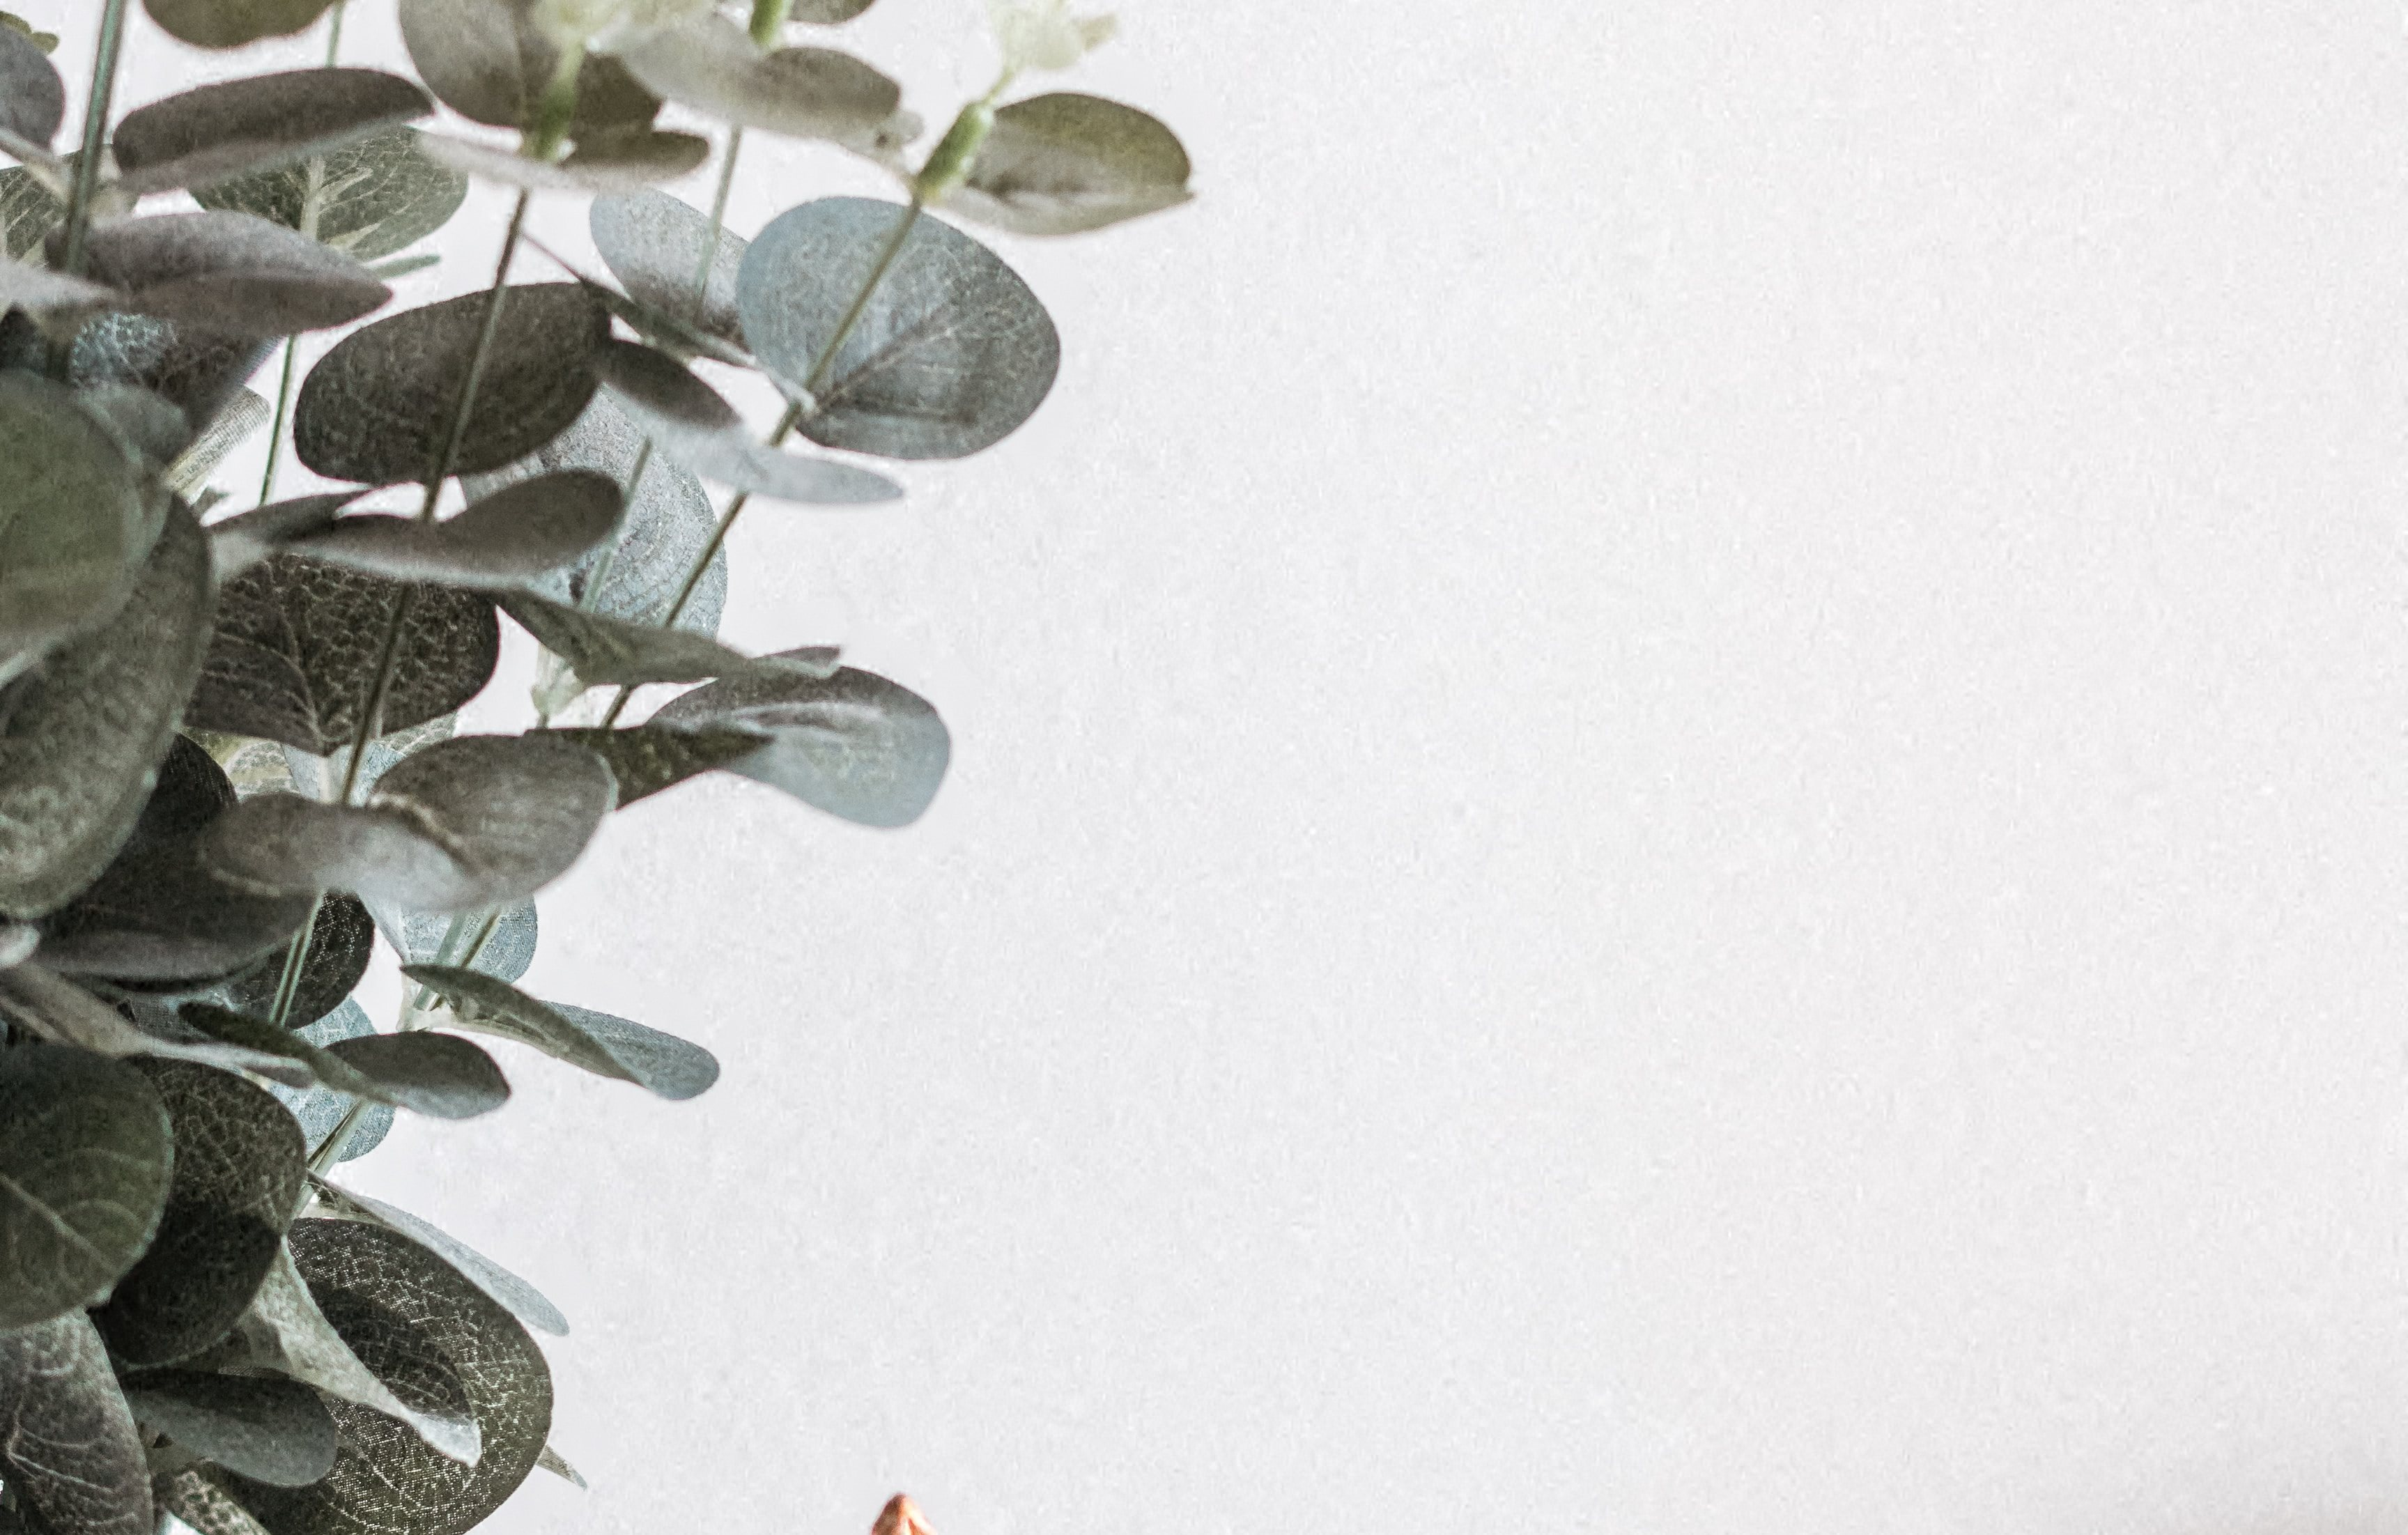 Stock Image of Desk Plant on White Surface with Gold Geometric Wire Decoration